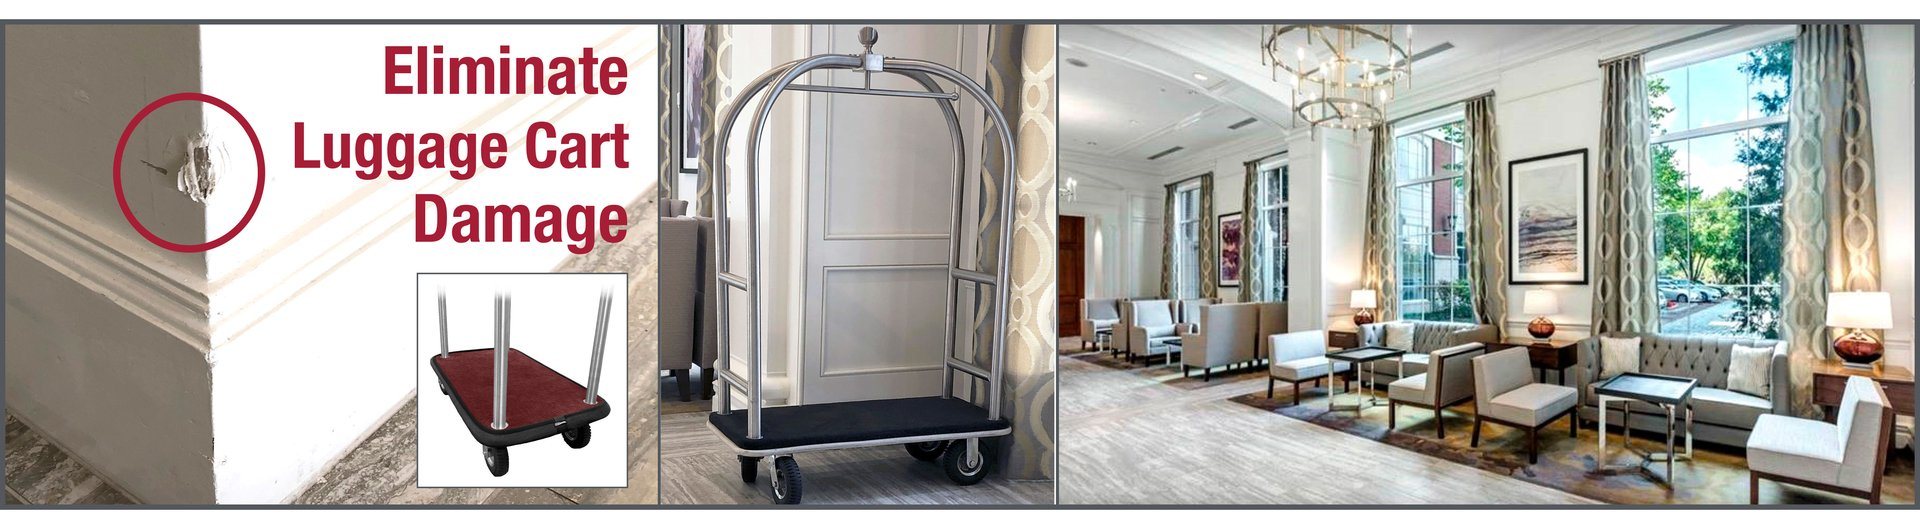 Eliminate Luggage Cart Damage with DuraBumper